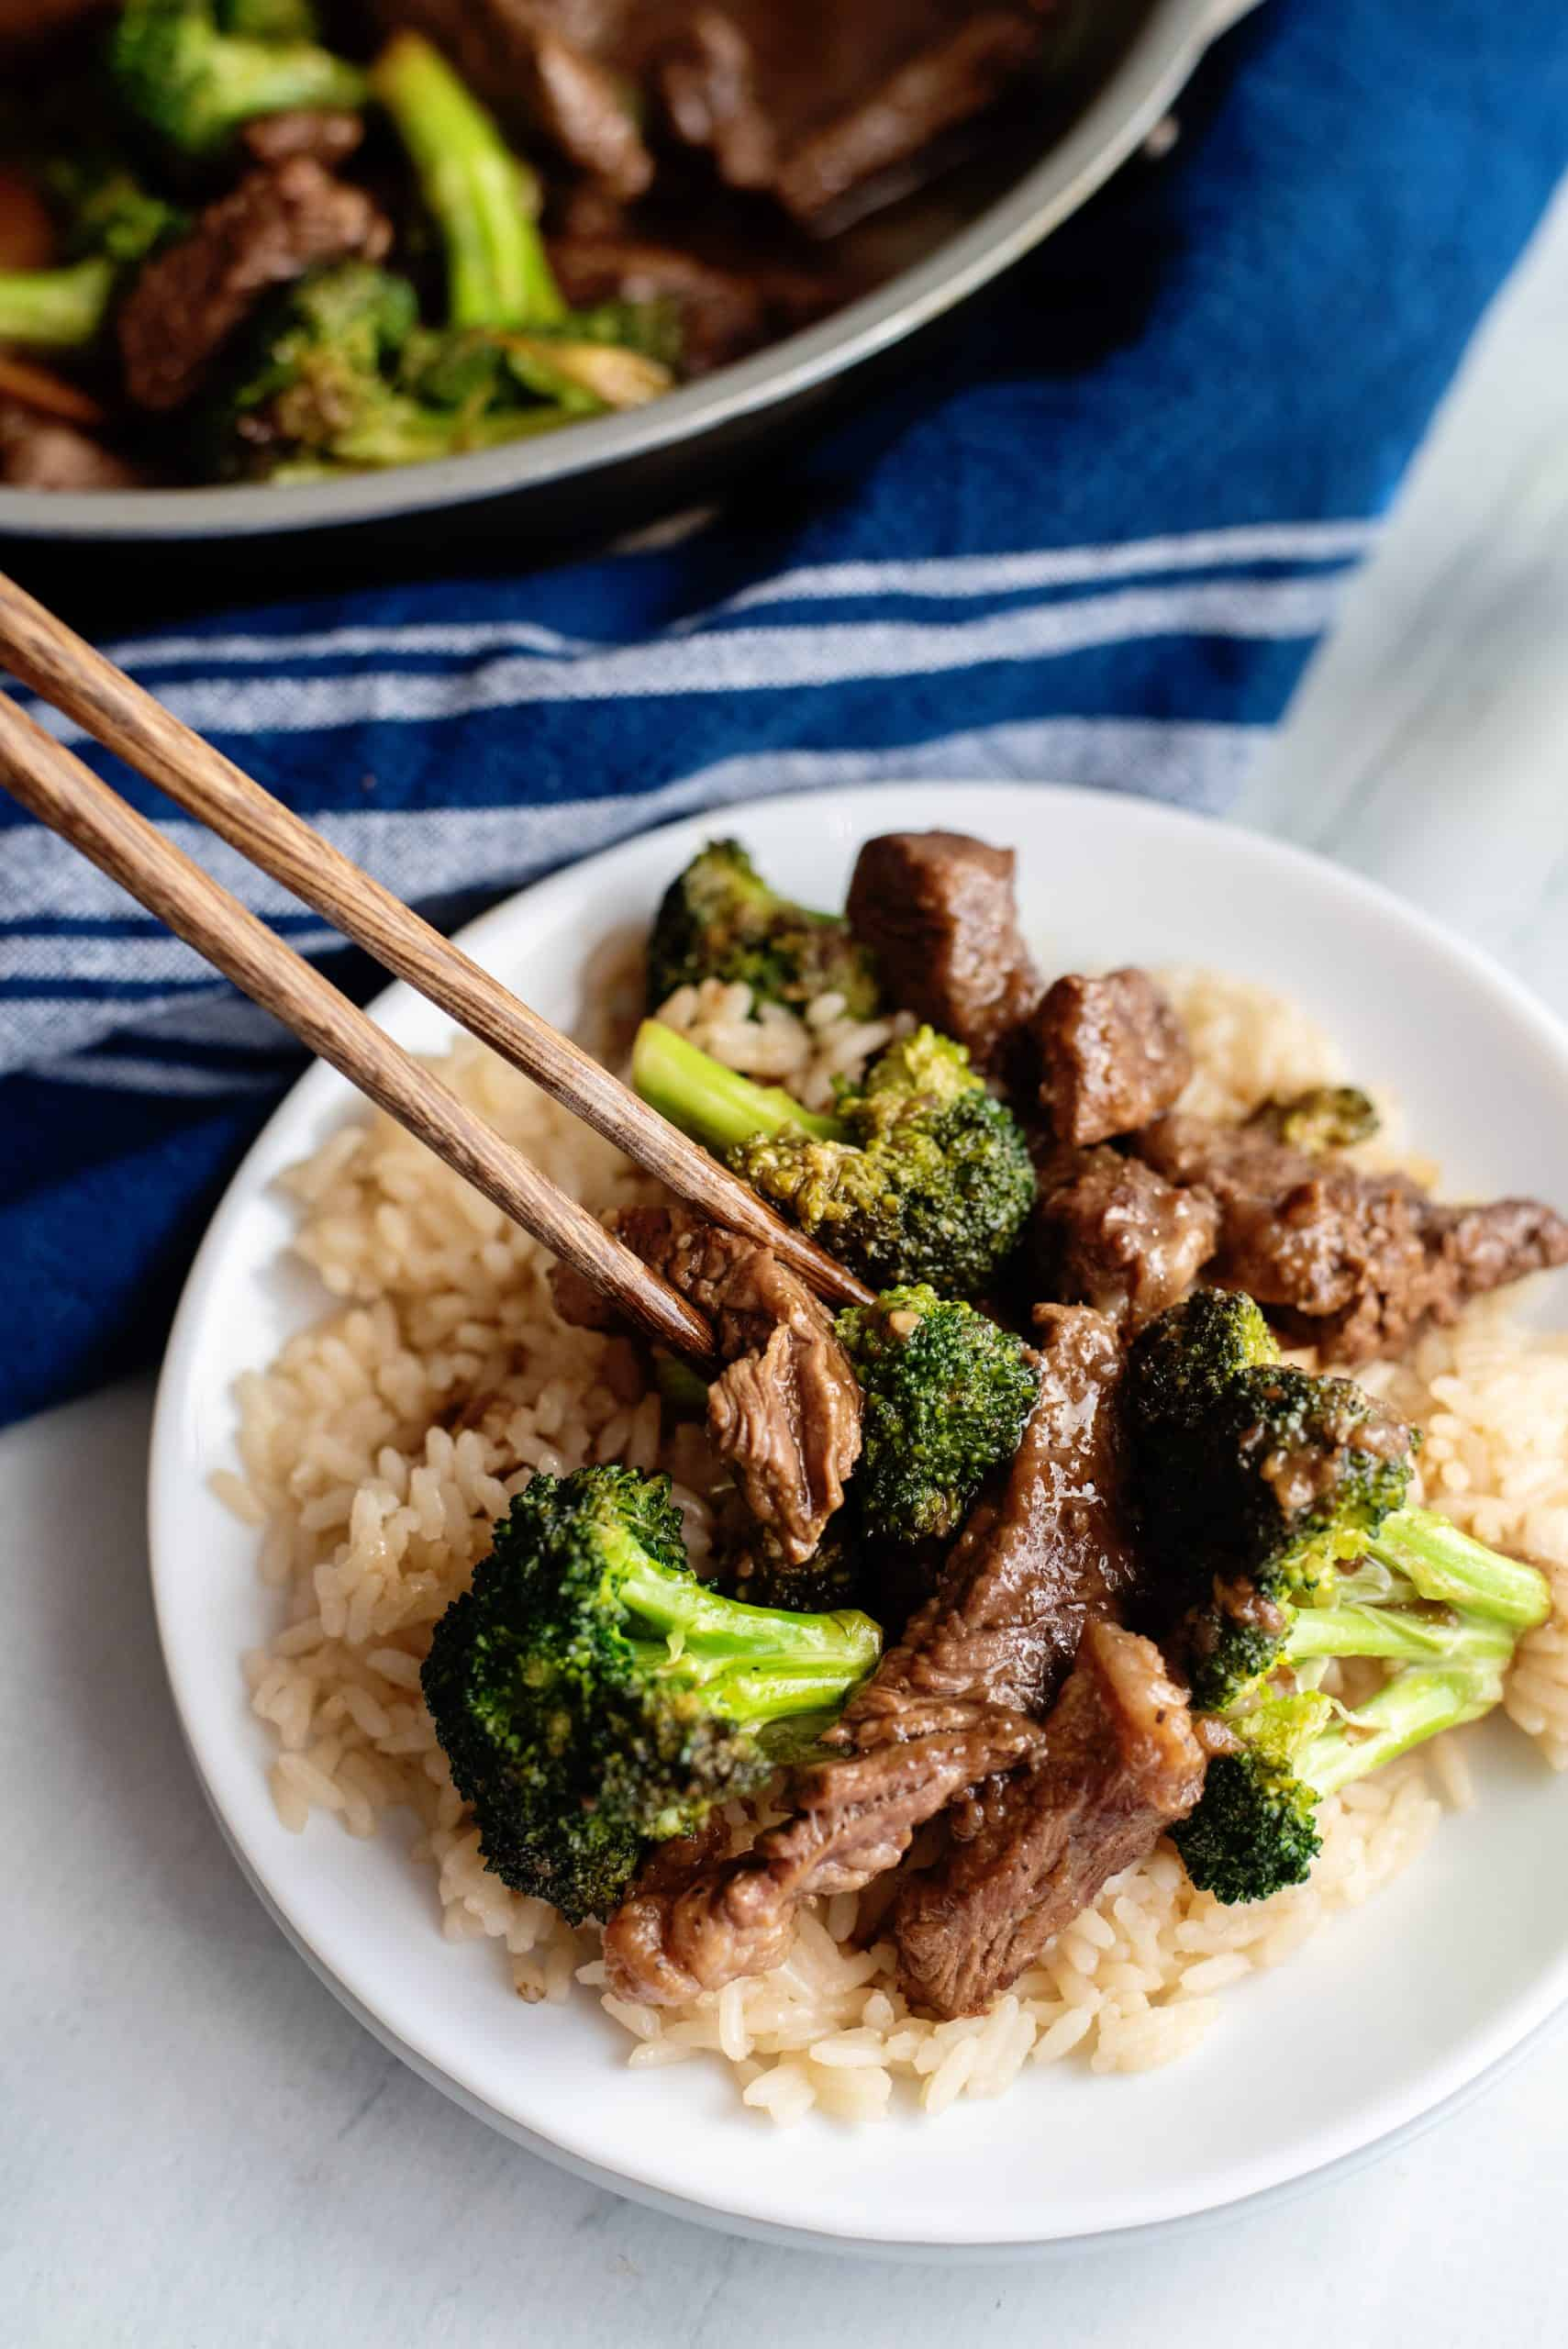 Beef And Broccoli Southern Plate